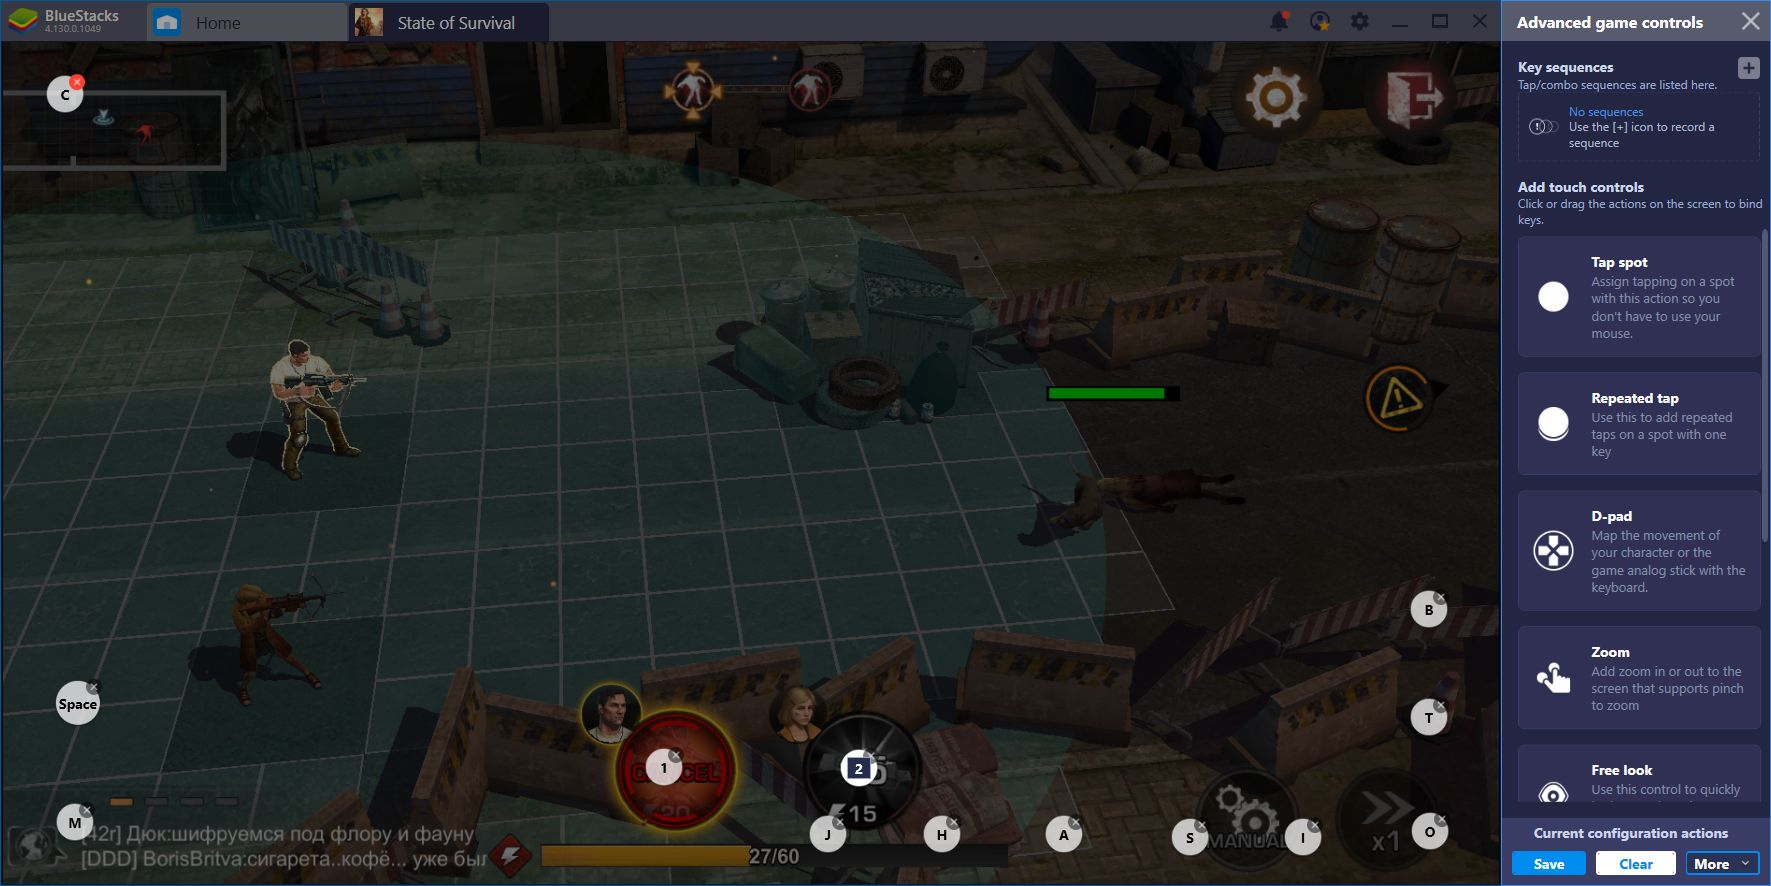 State of Survival: Using BlueStacks to Win in this Zombie Game